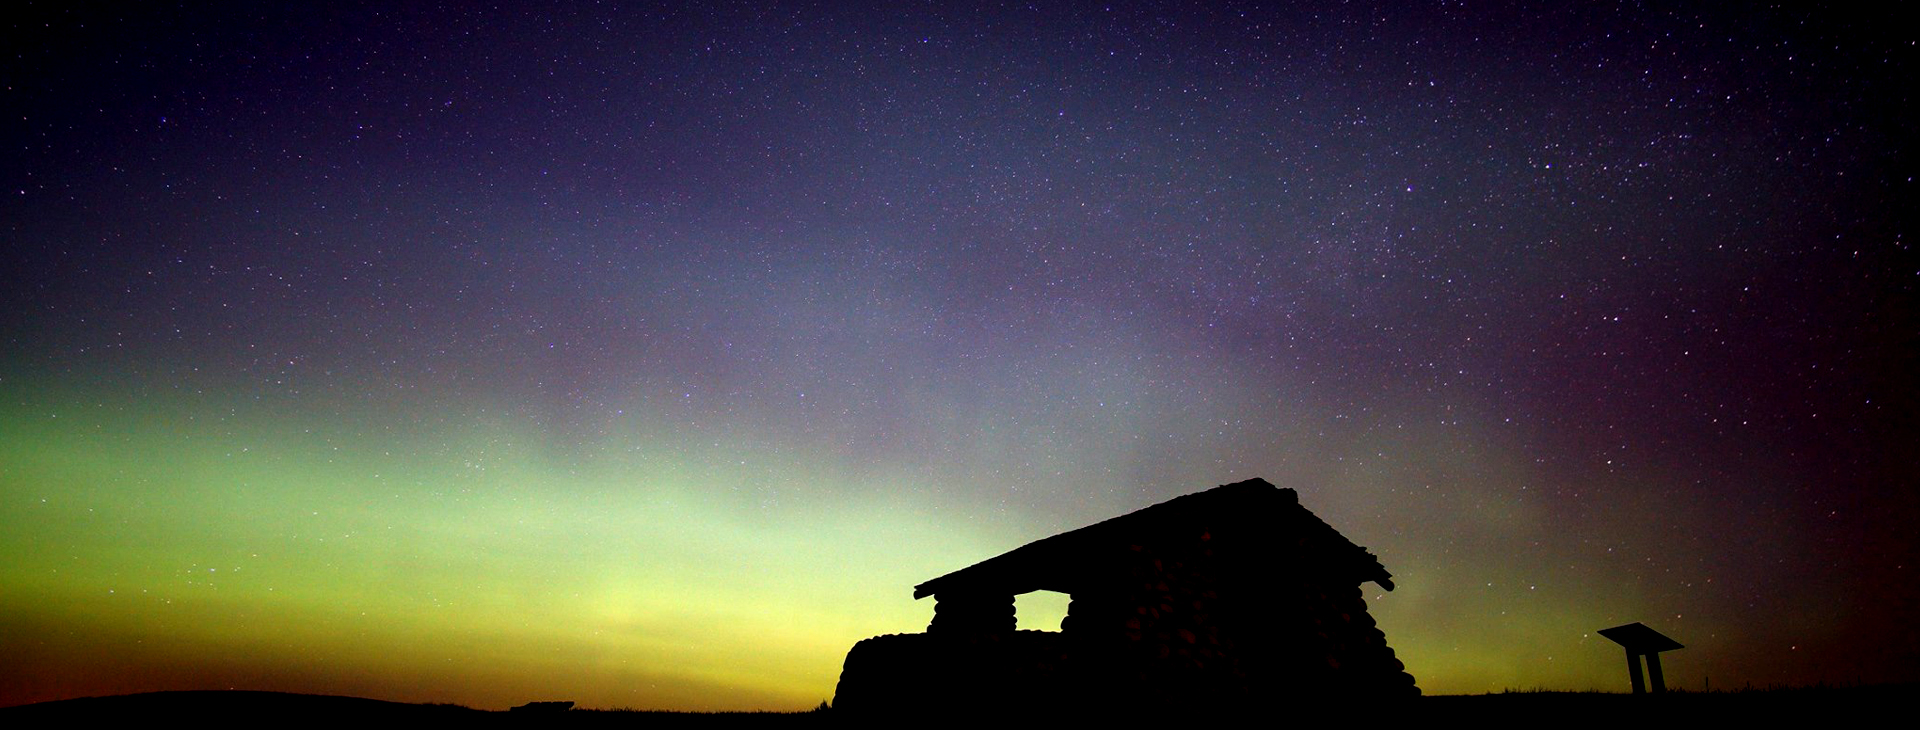 The Northern Lights over the silhouette of a building